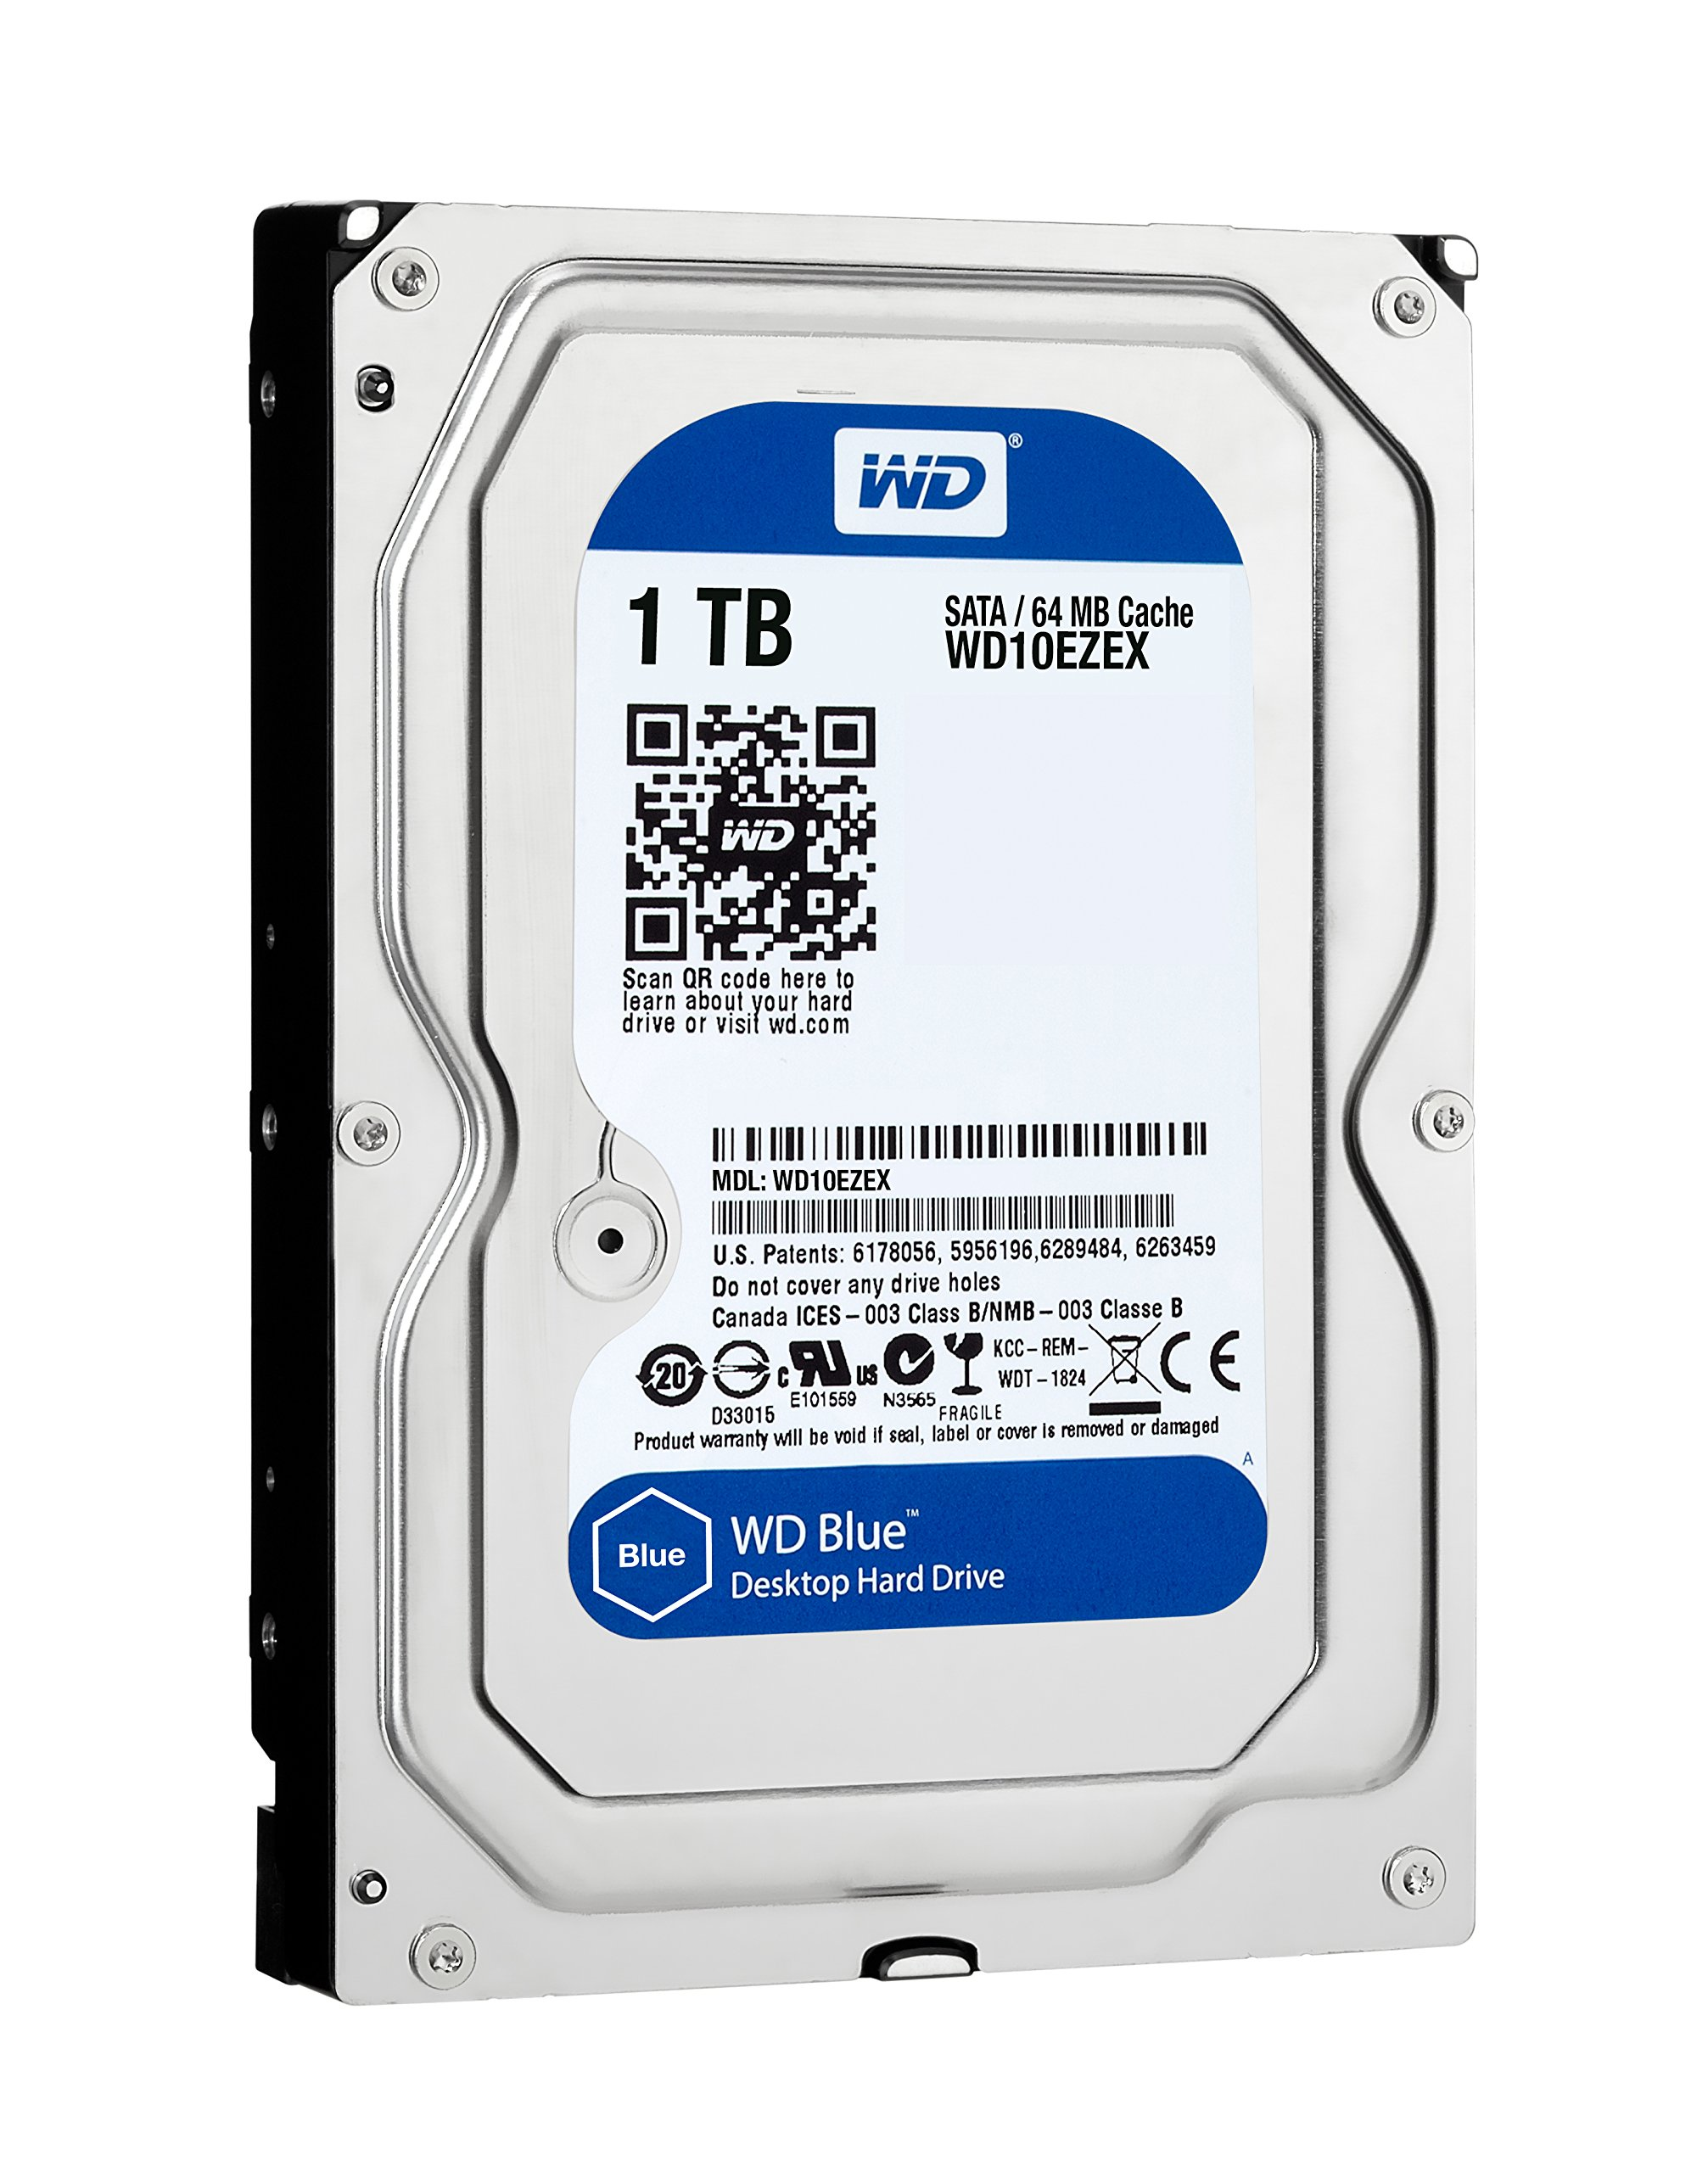 WD Blue Desktop Hard Drive 1TB, 7200 RPM, SATA 6 Gb/sec